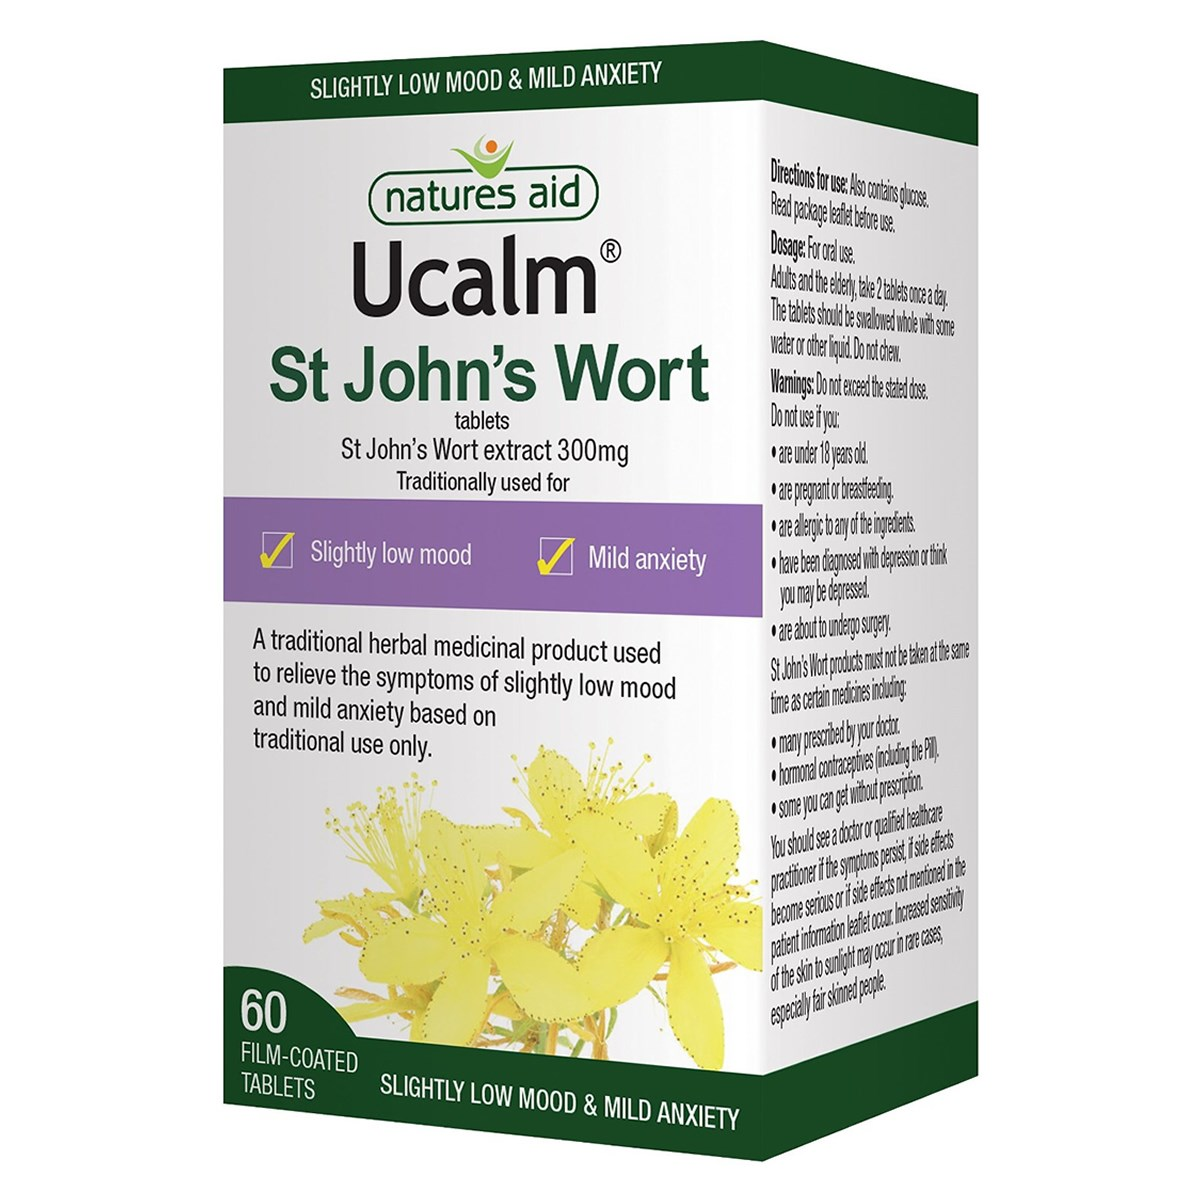 Natures Aid UCalm 300mg (St. John's Wort) Tablets